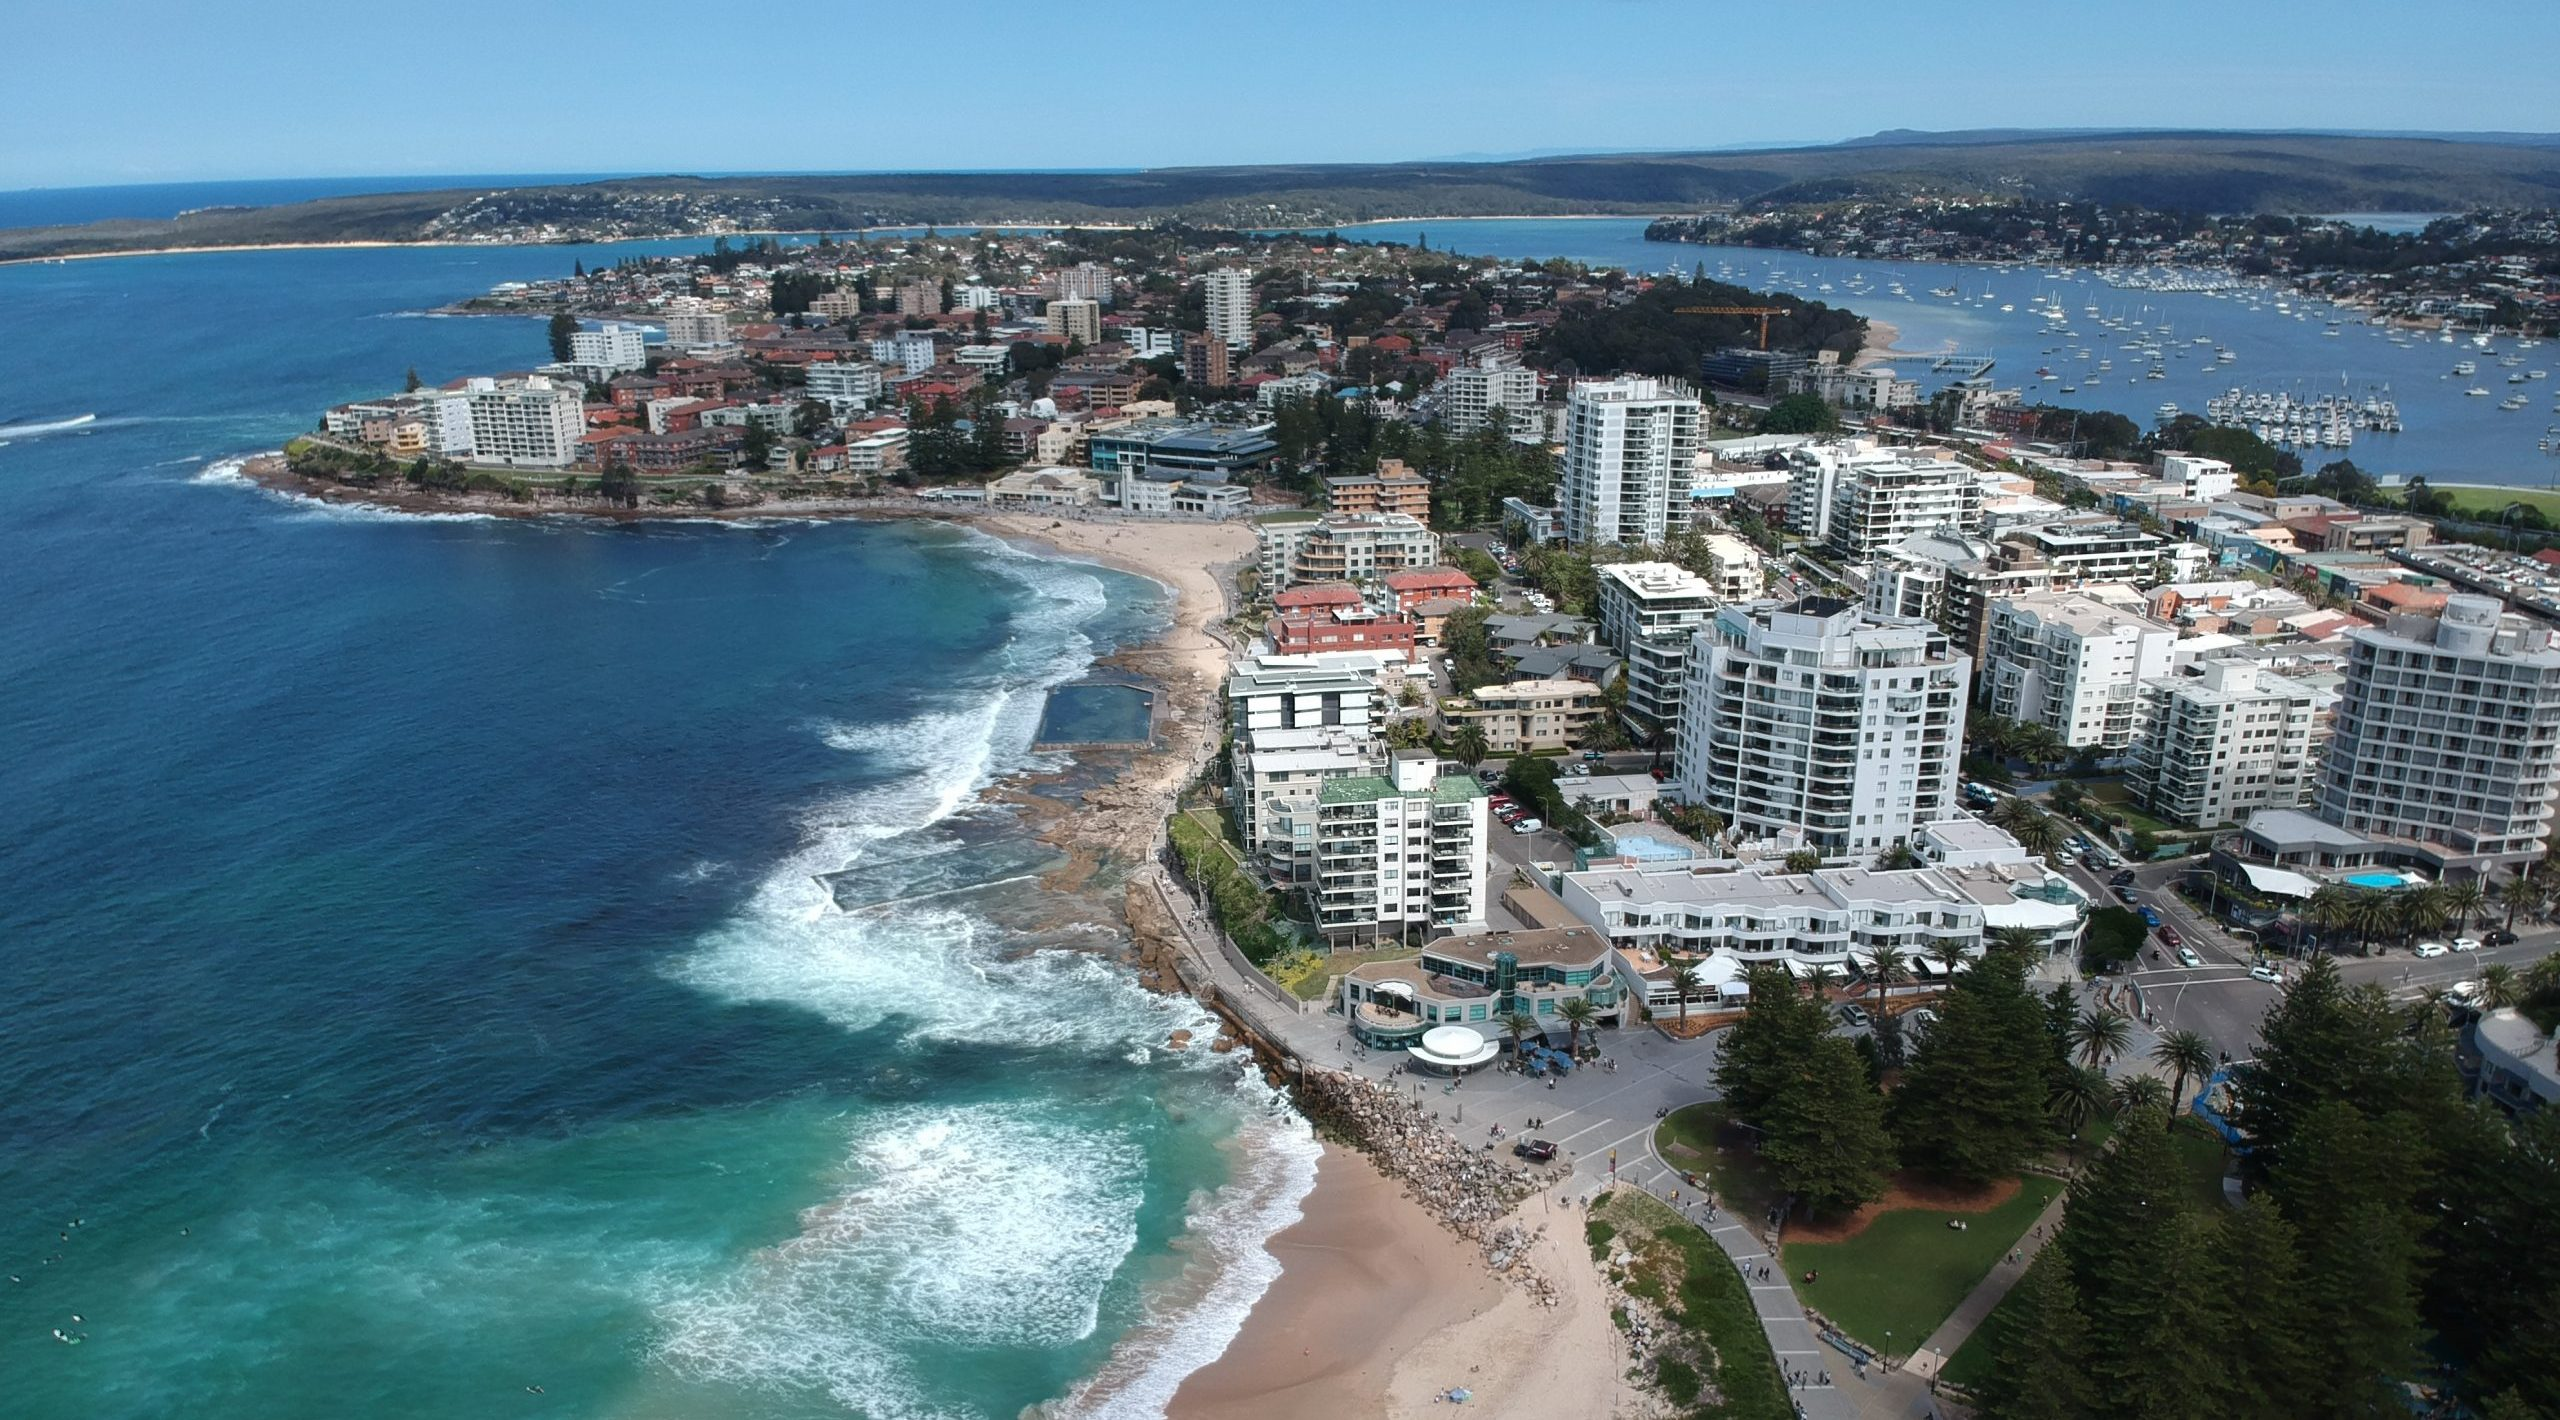 About Cronulla